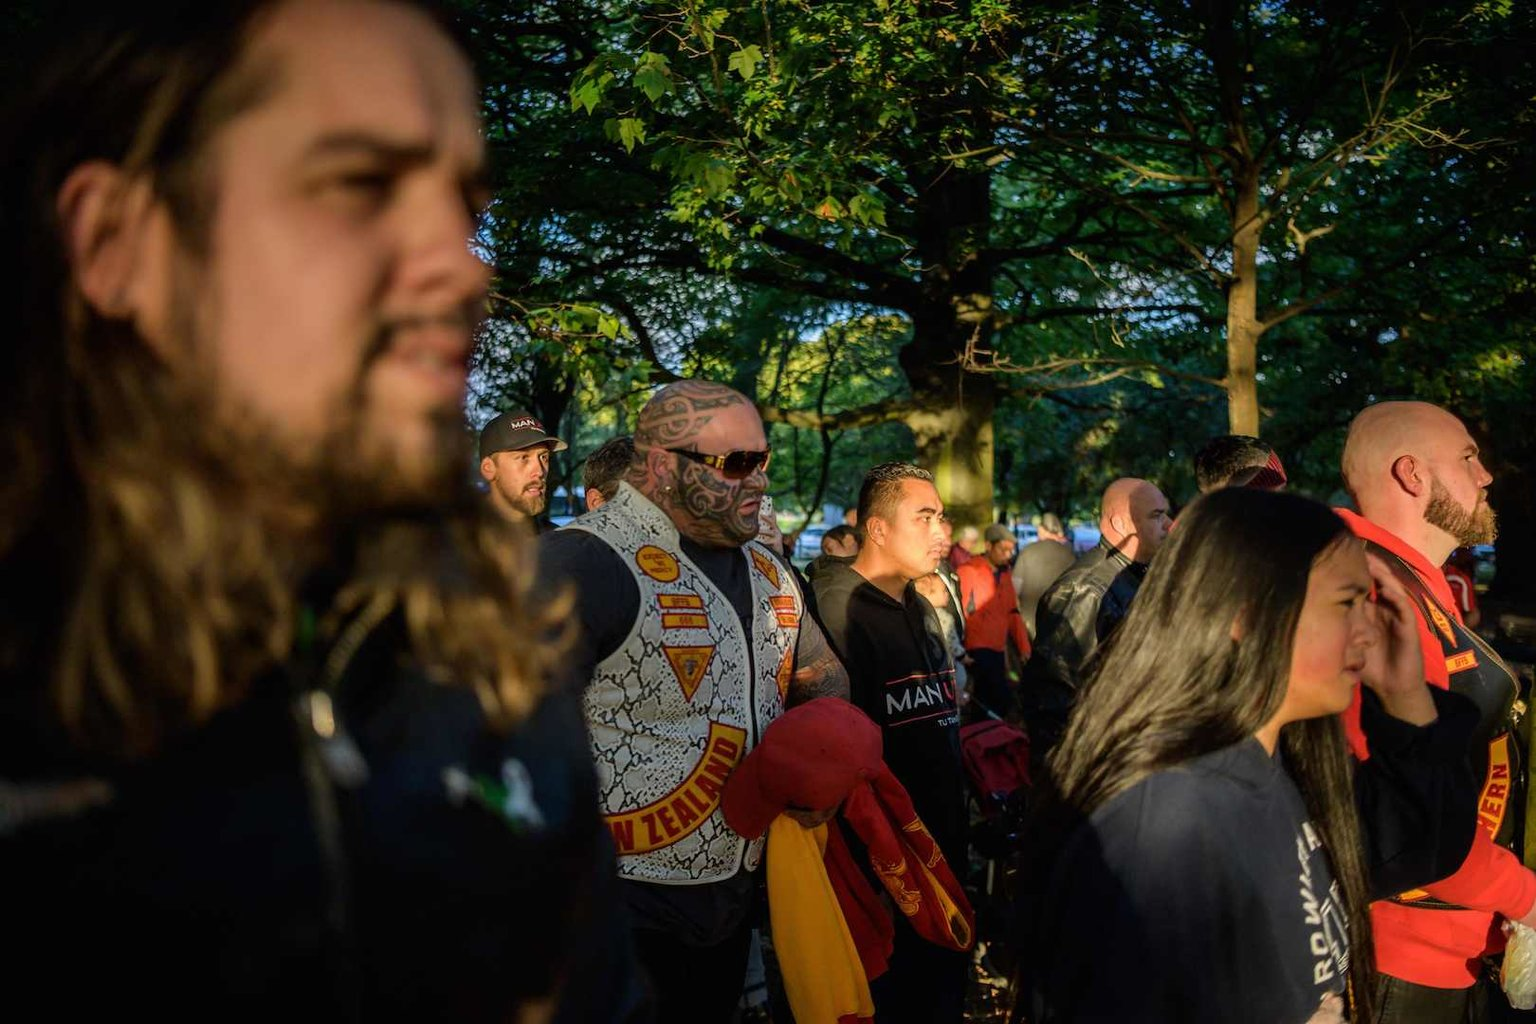 Members of biker gangs arrive before performing the haka in front of a gathering of people as a tribute to victims in Christchurch